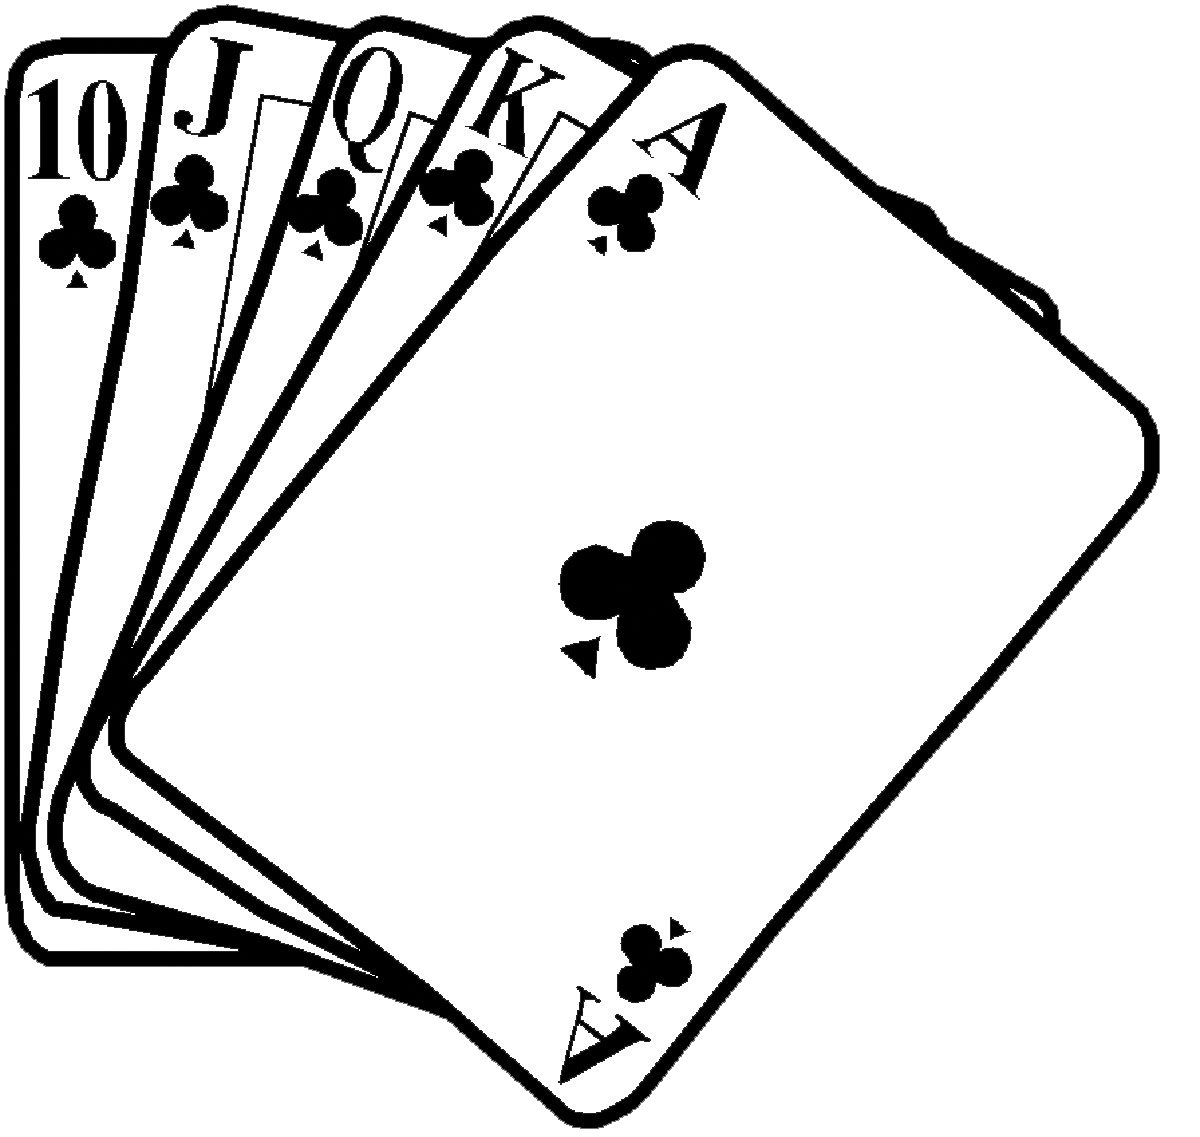 Poker clipart #15, Download drawings